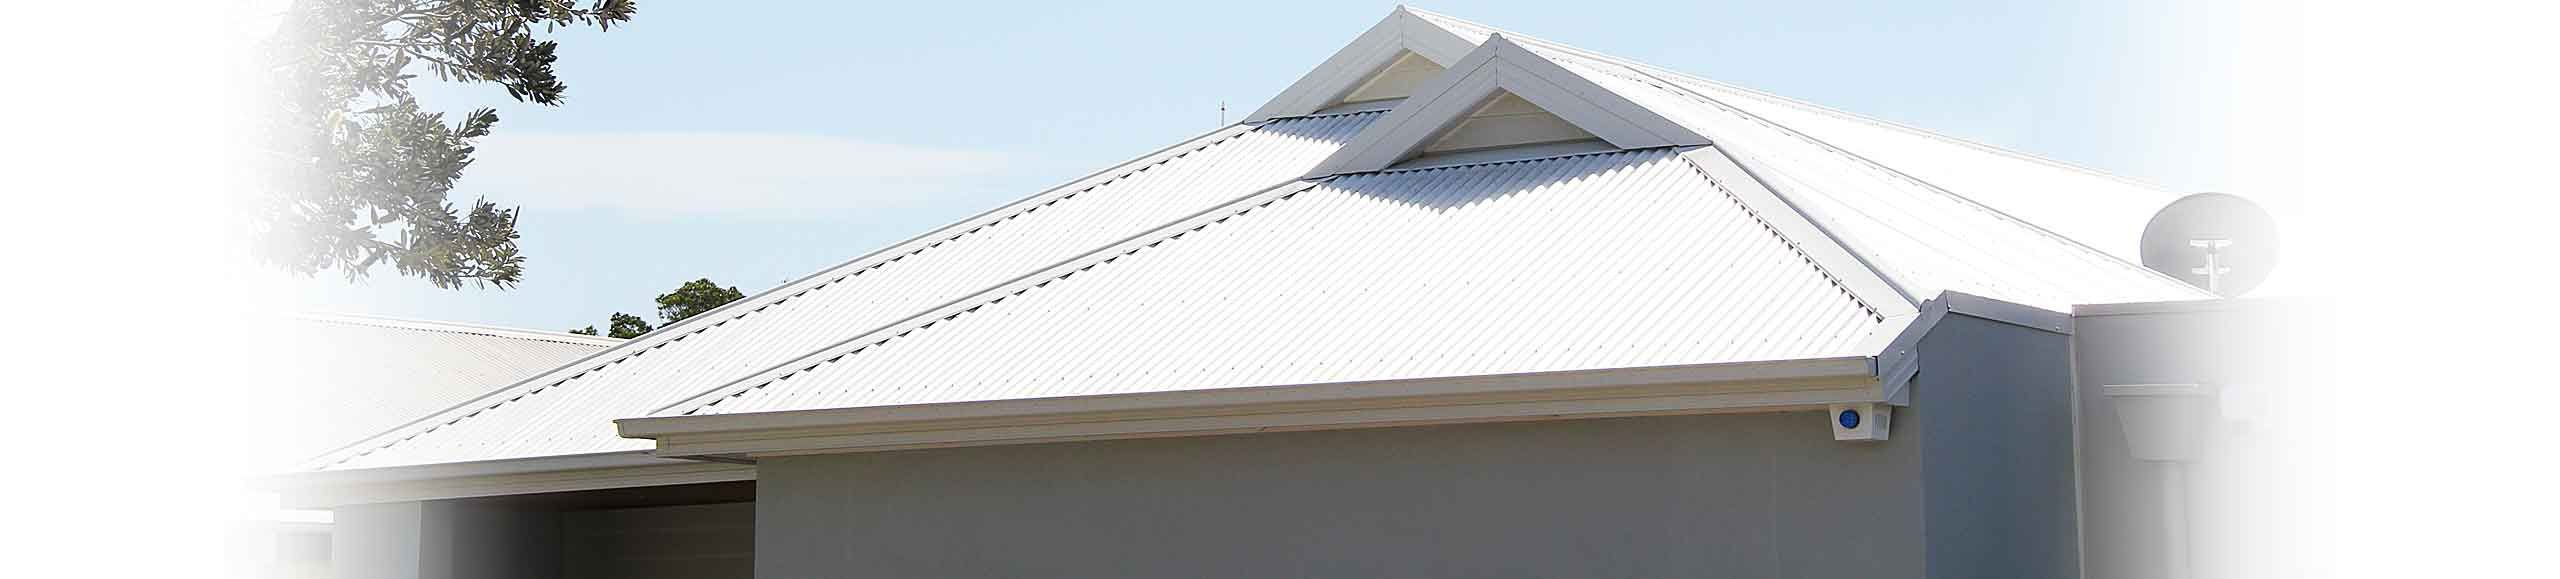 supply and installation of premium quality roofing products